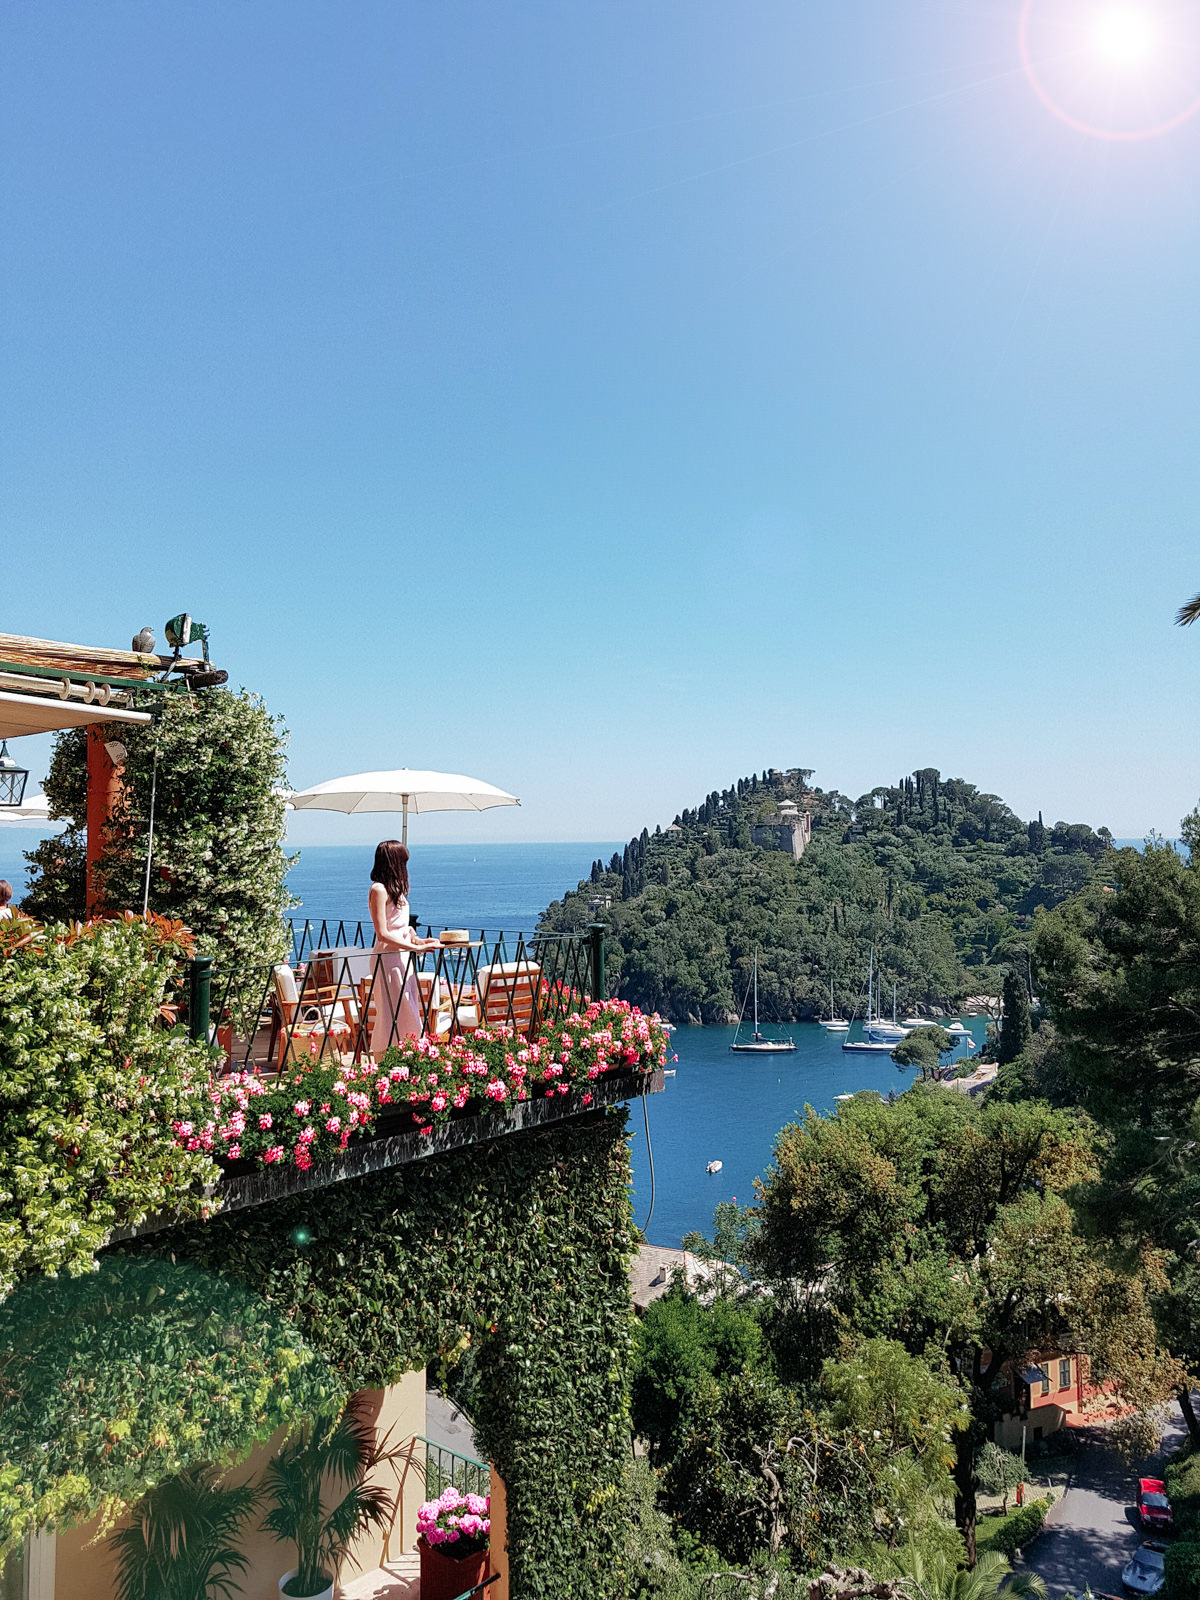 Blog-Mode-And-The-City-Lifestyle-Italie-Portofino-Belmond-Hotel-18